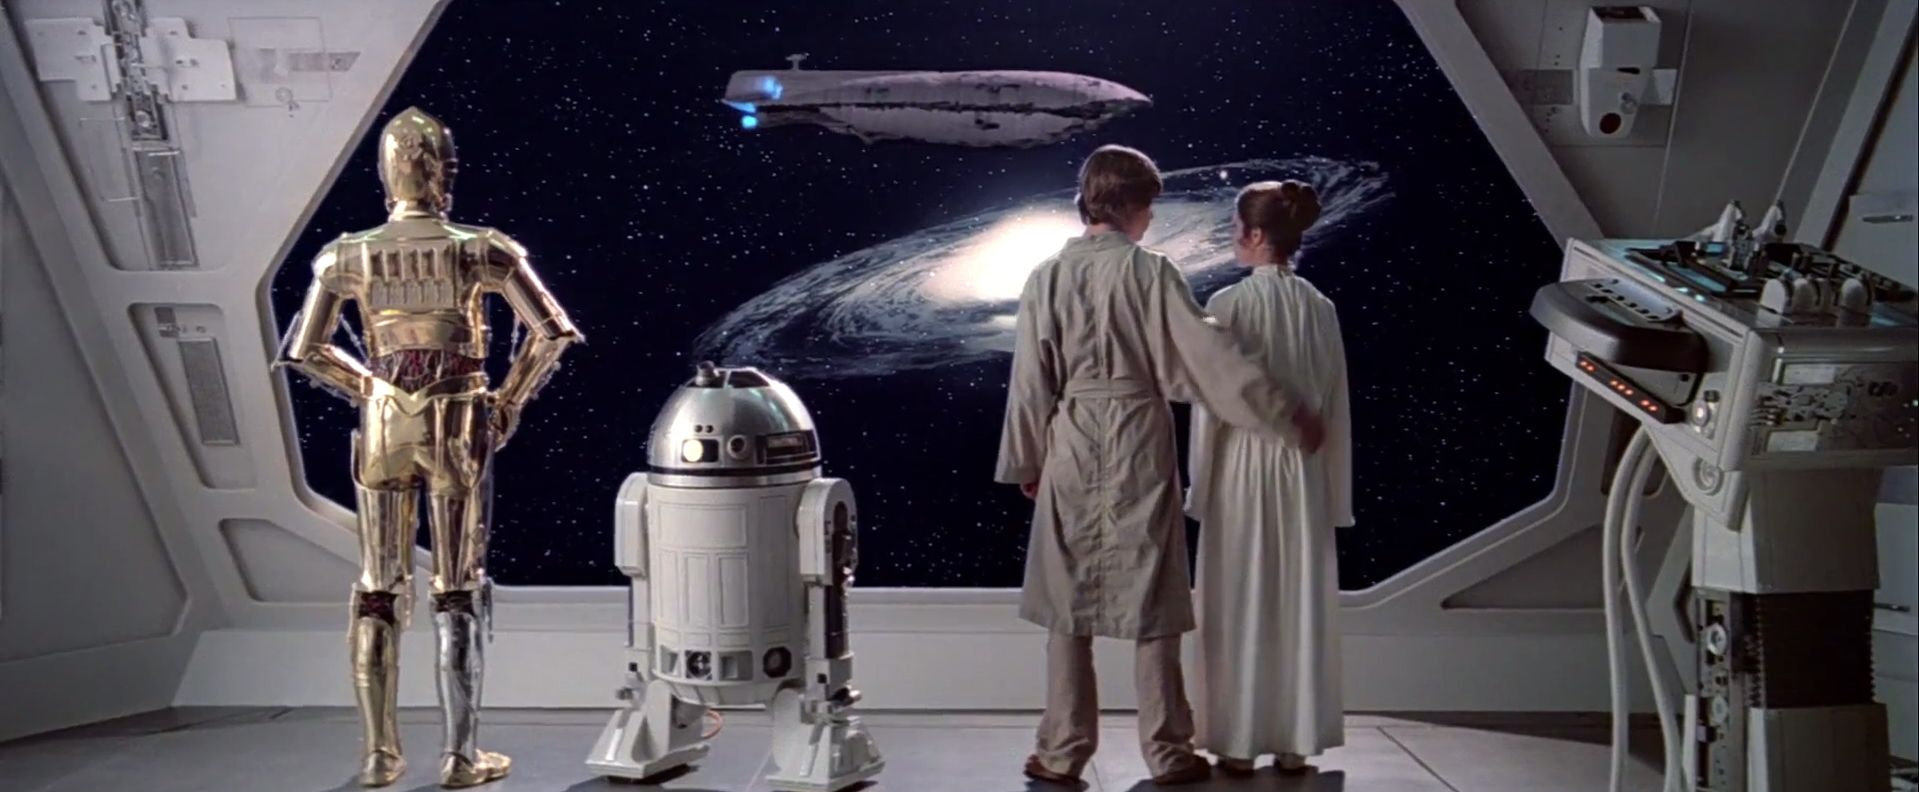 Empire Strikes Back's ending changed while it was in cinemas